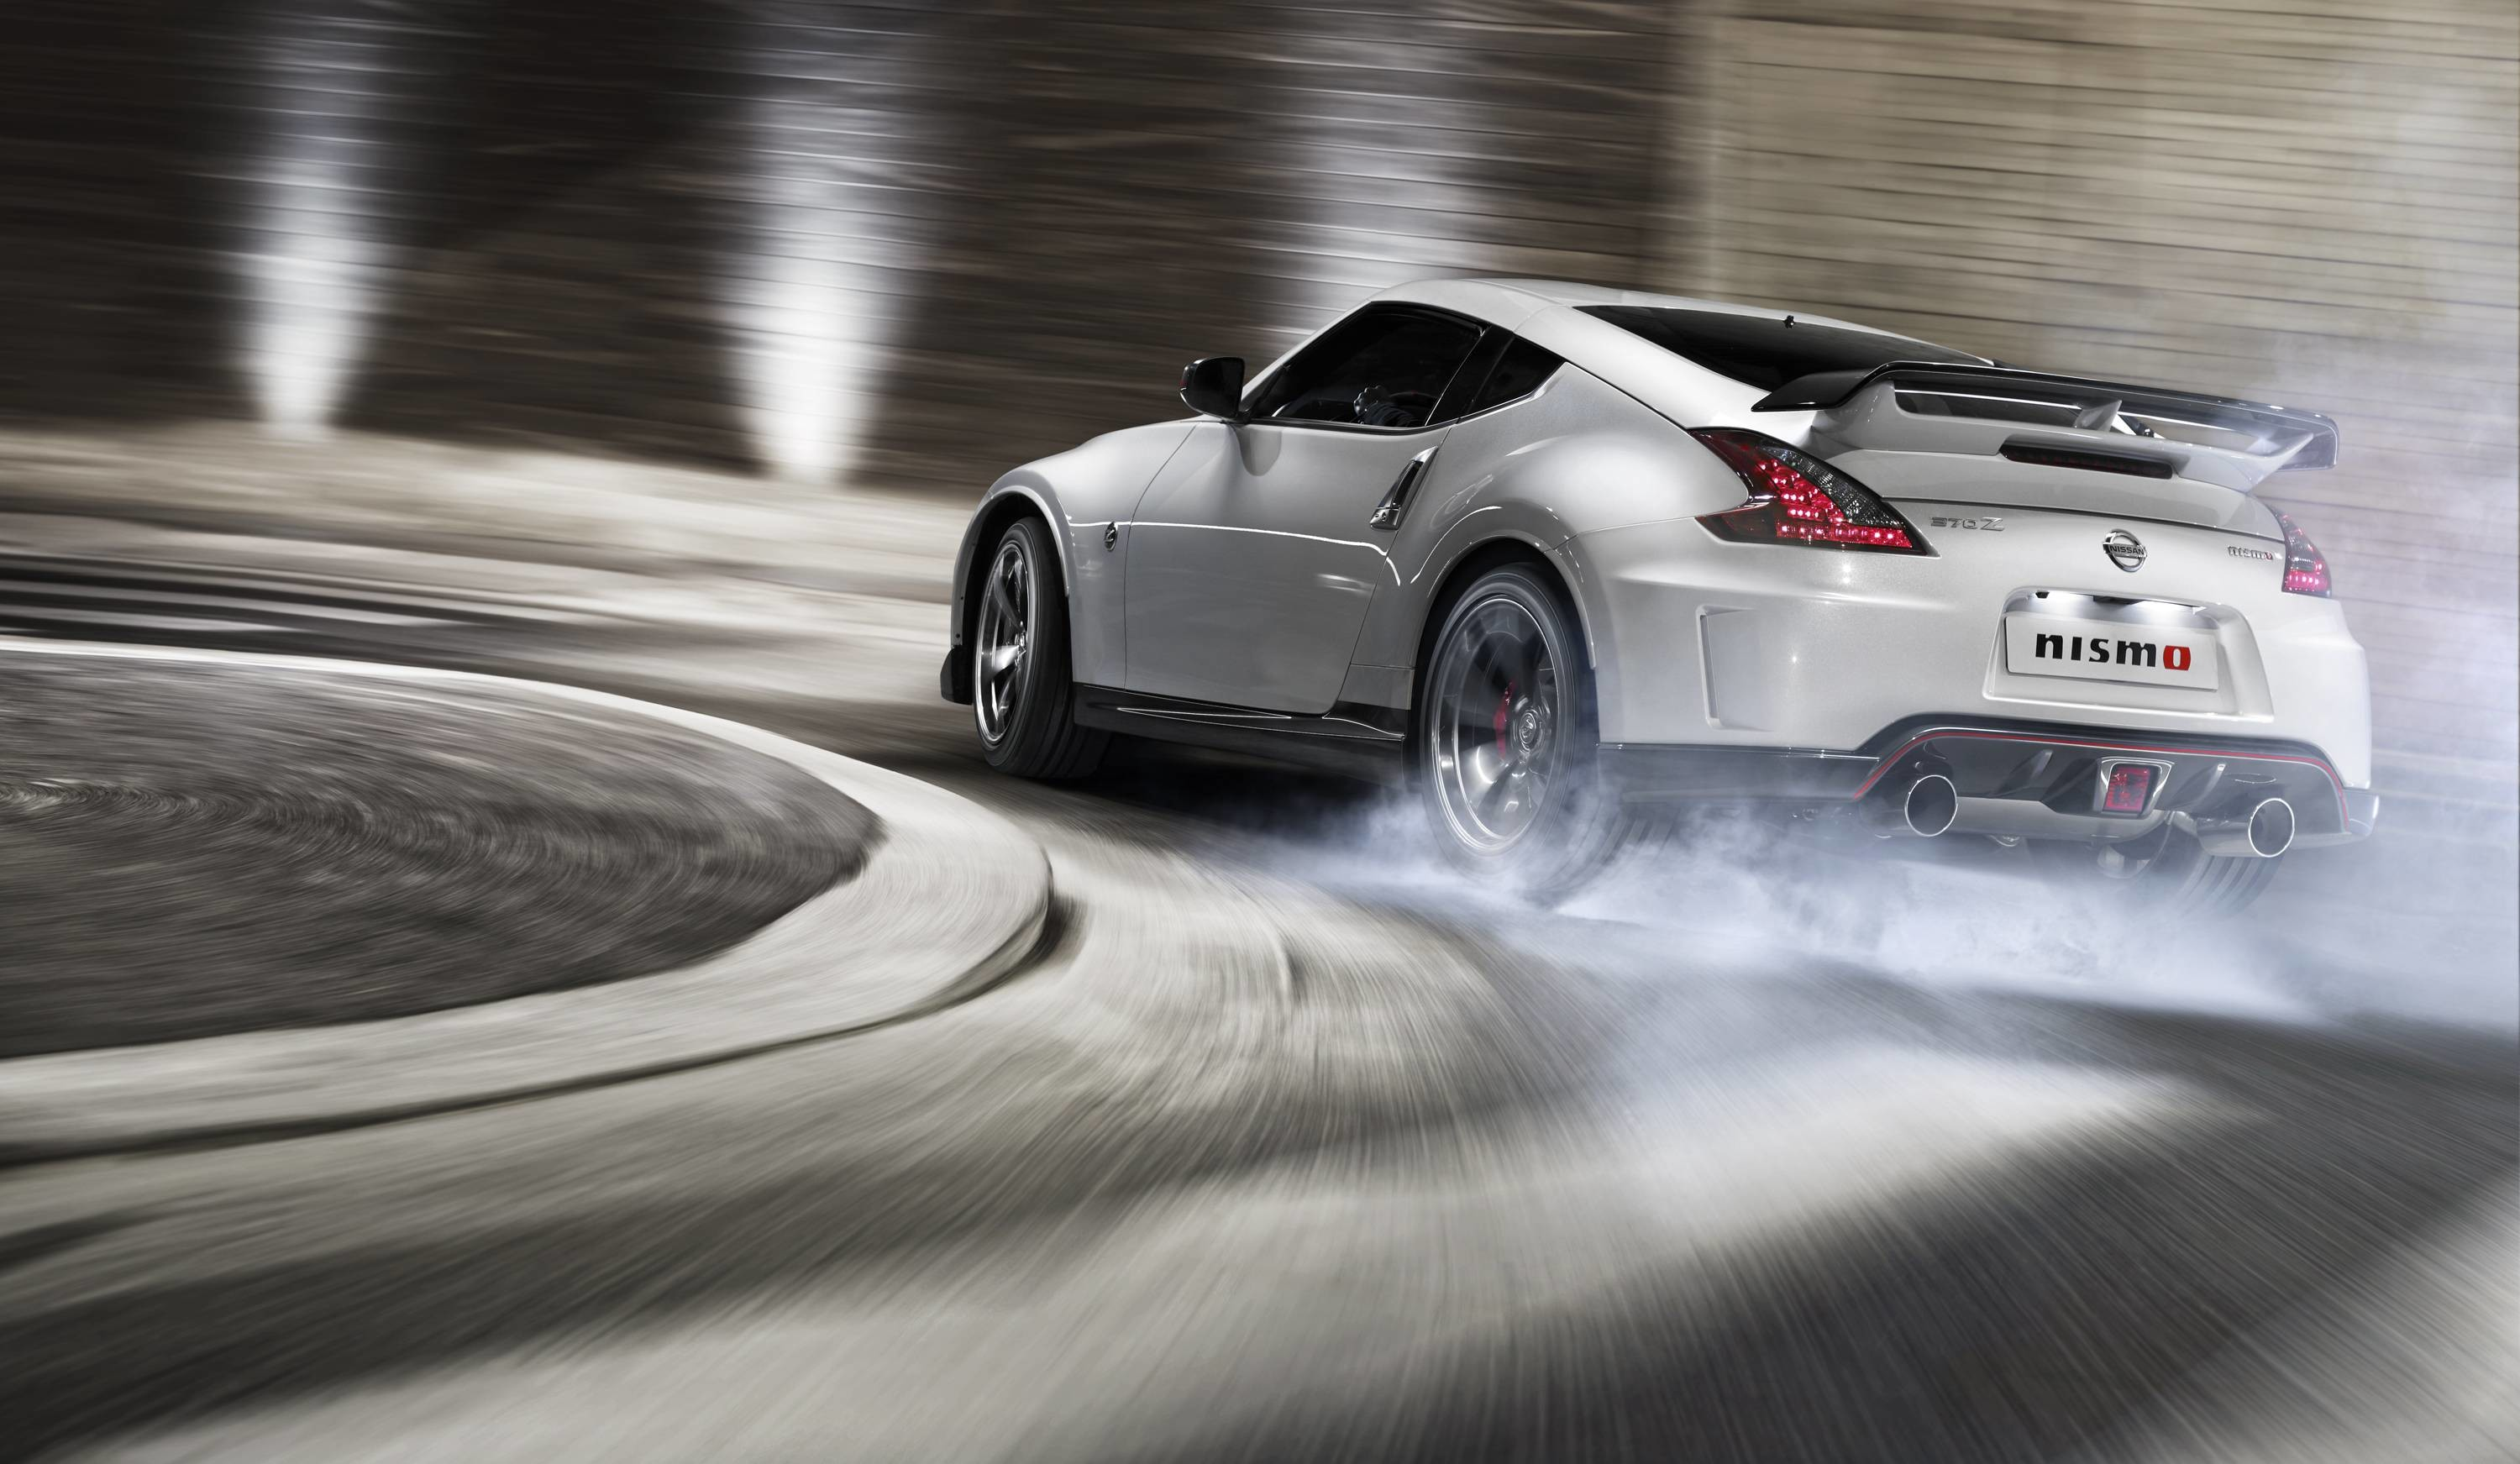 3000x1743 Images For U003e Nissan 370z Nismo Wallpaper